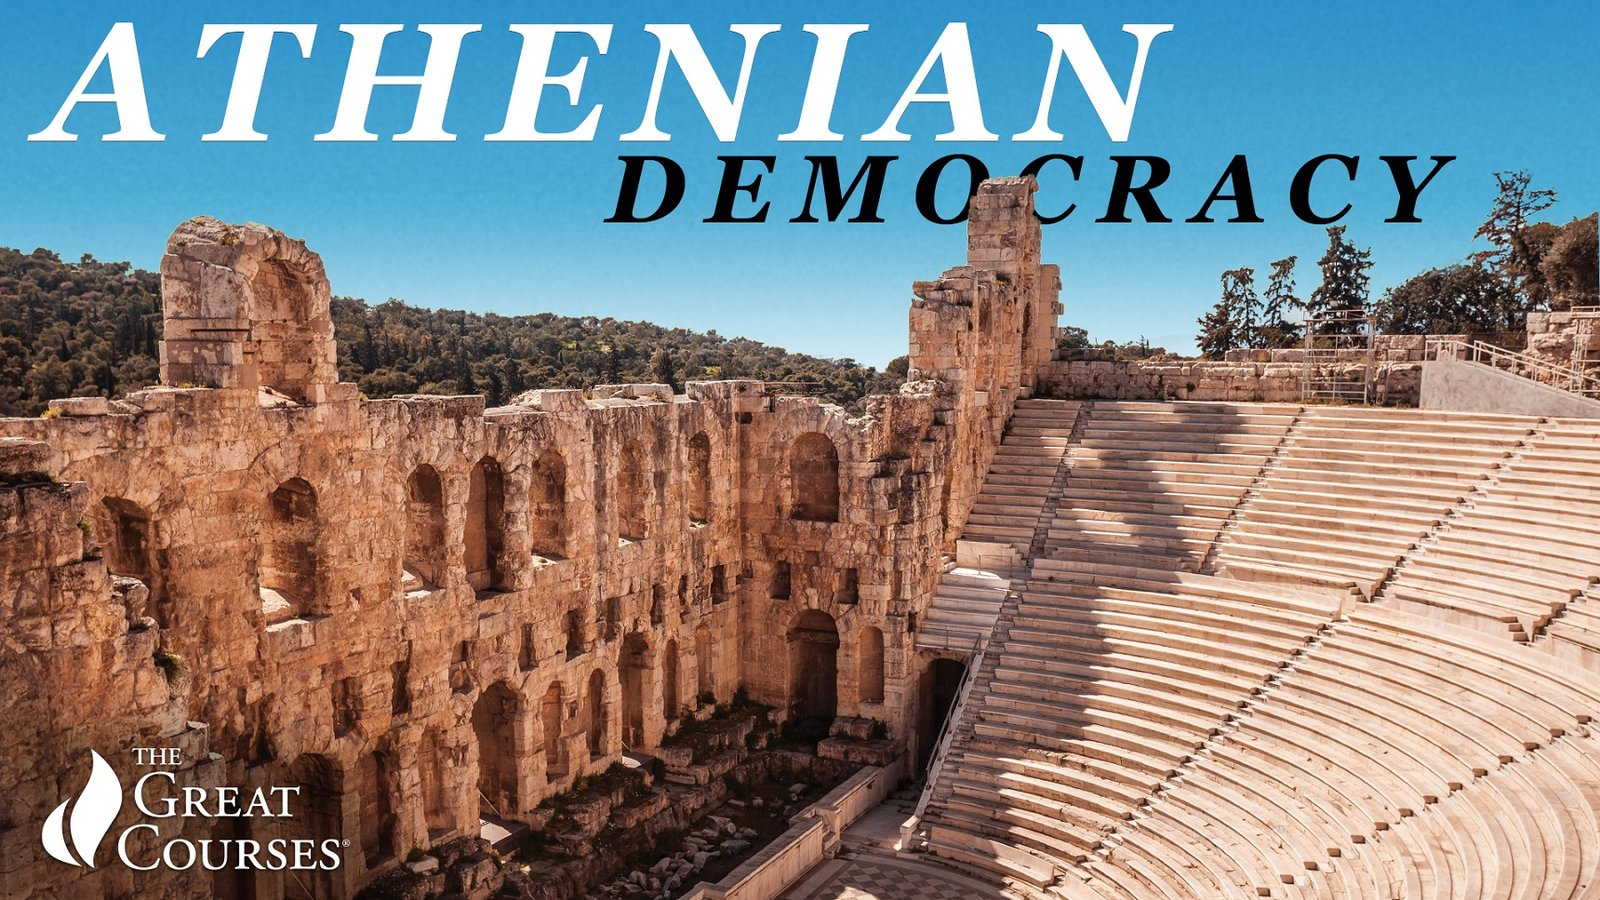 Athenian Democracy - An Experiment for the Ages